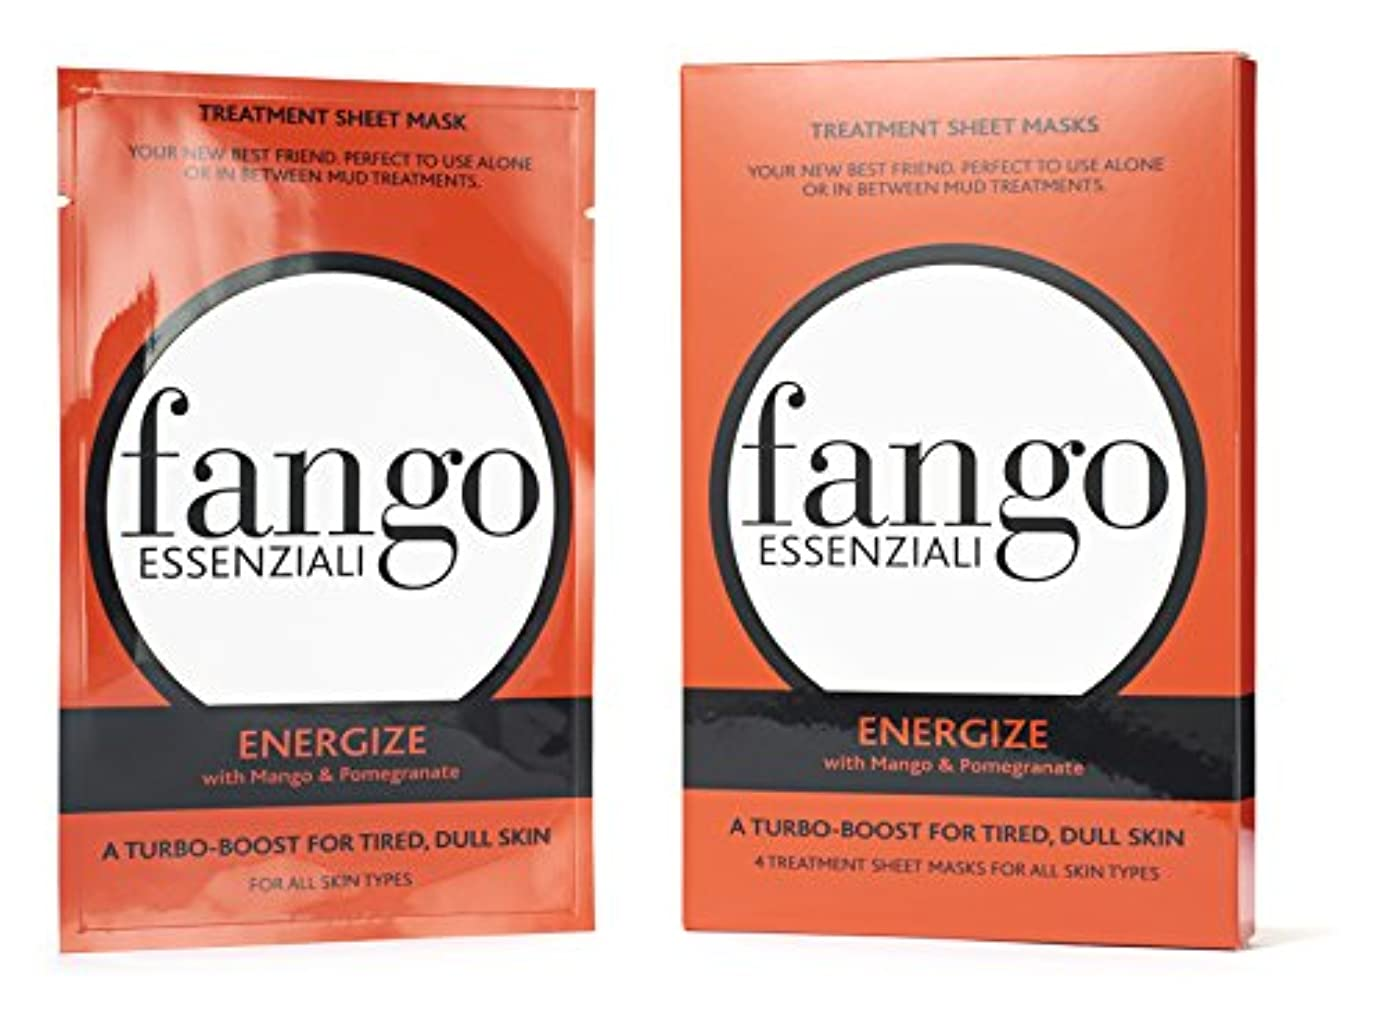 収益同封する次ボルゲーゼ Fango Essenziali Energize Treatment Sheet Masks 4x25ml/0.83oz並行輸入品